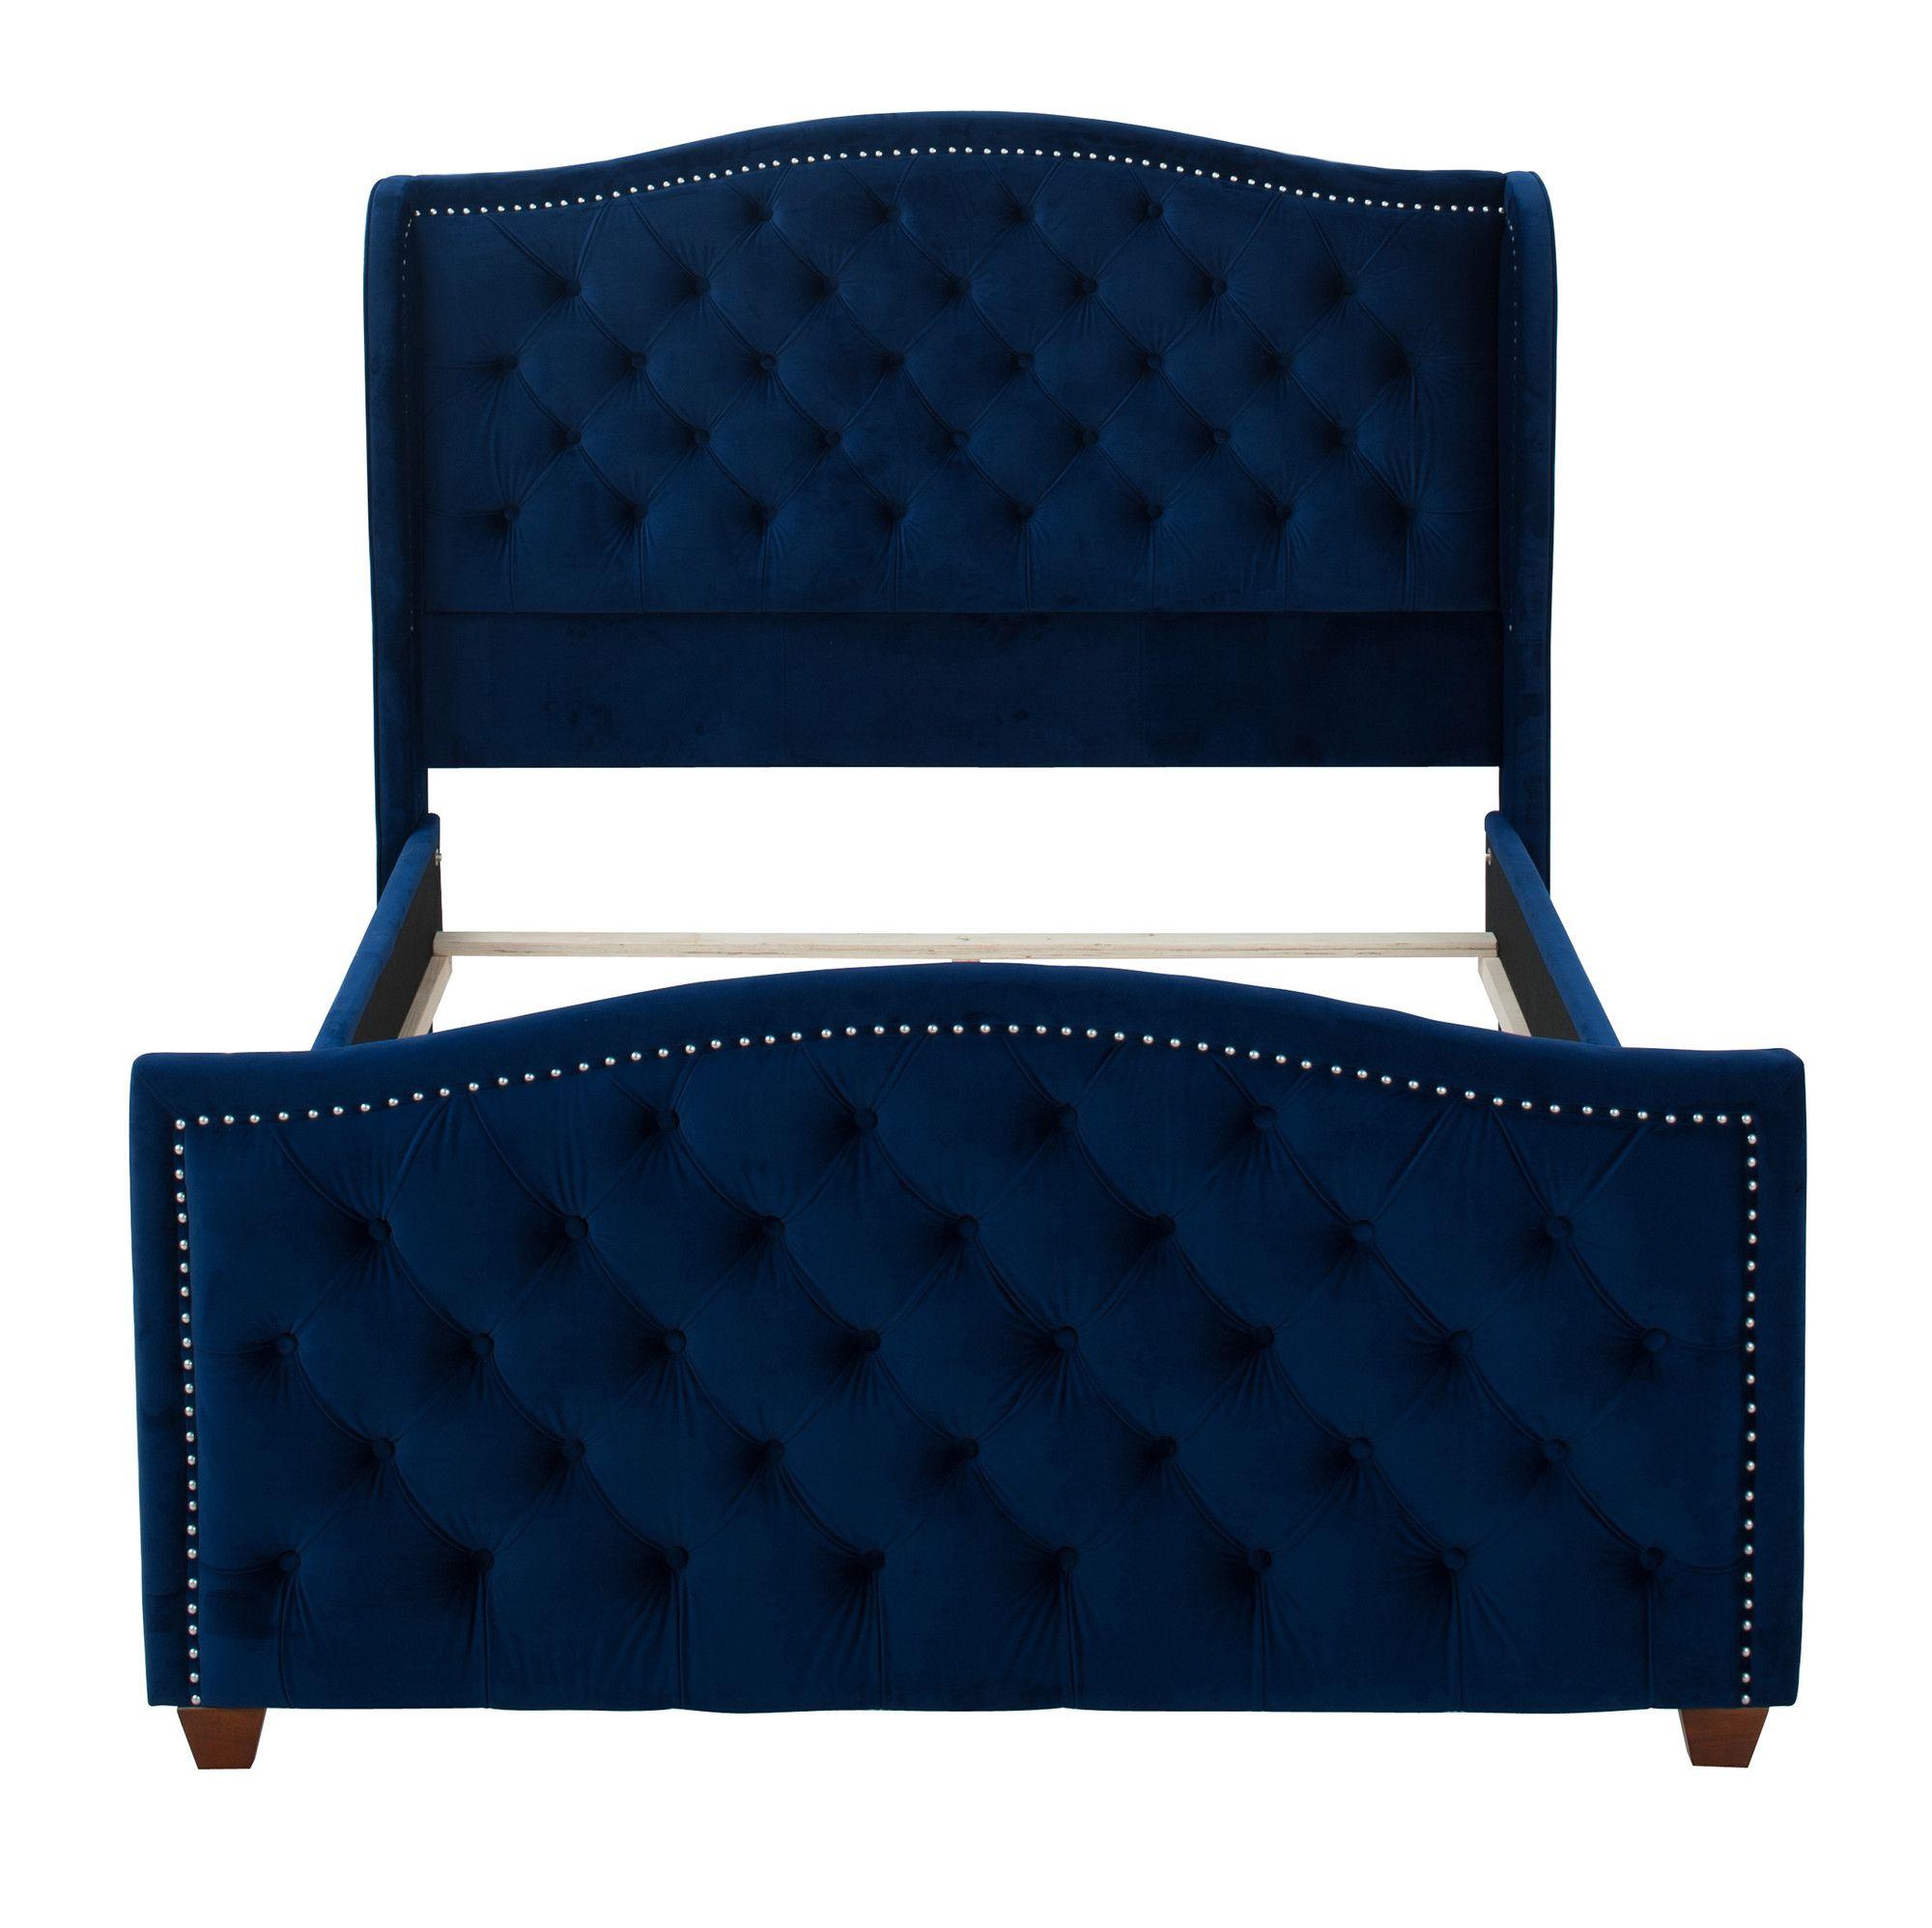 Attenborough Tufted Upholstered Panel Bed | Products